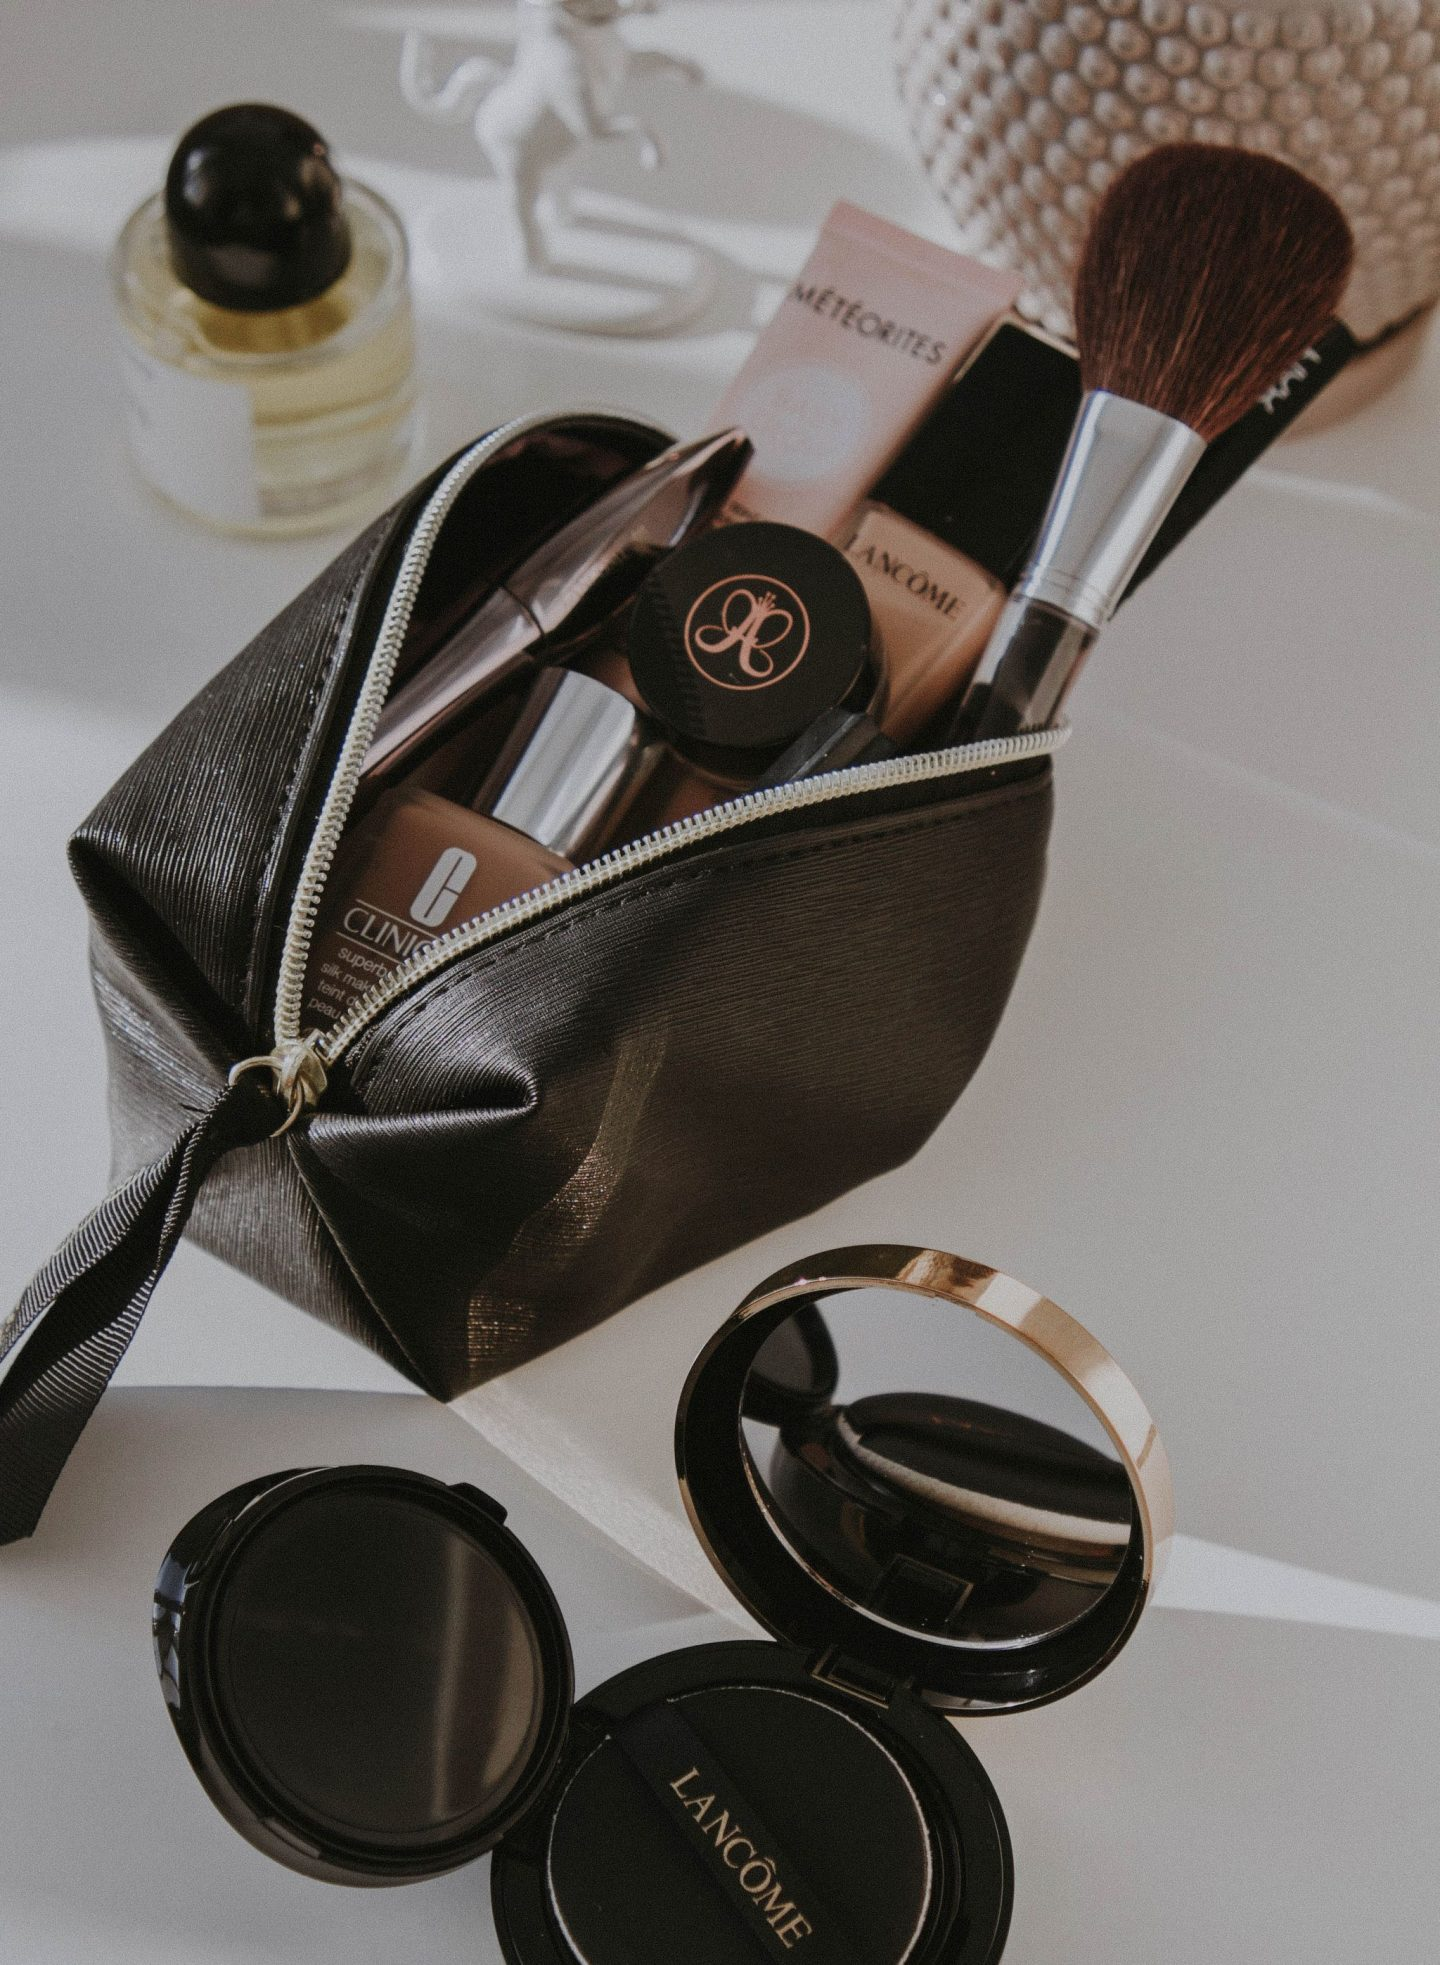 7 ESSENTIAL TYPES OF MAKEUP TO PACK FOR YOUR VACATION